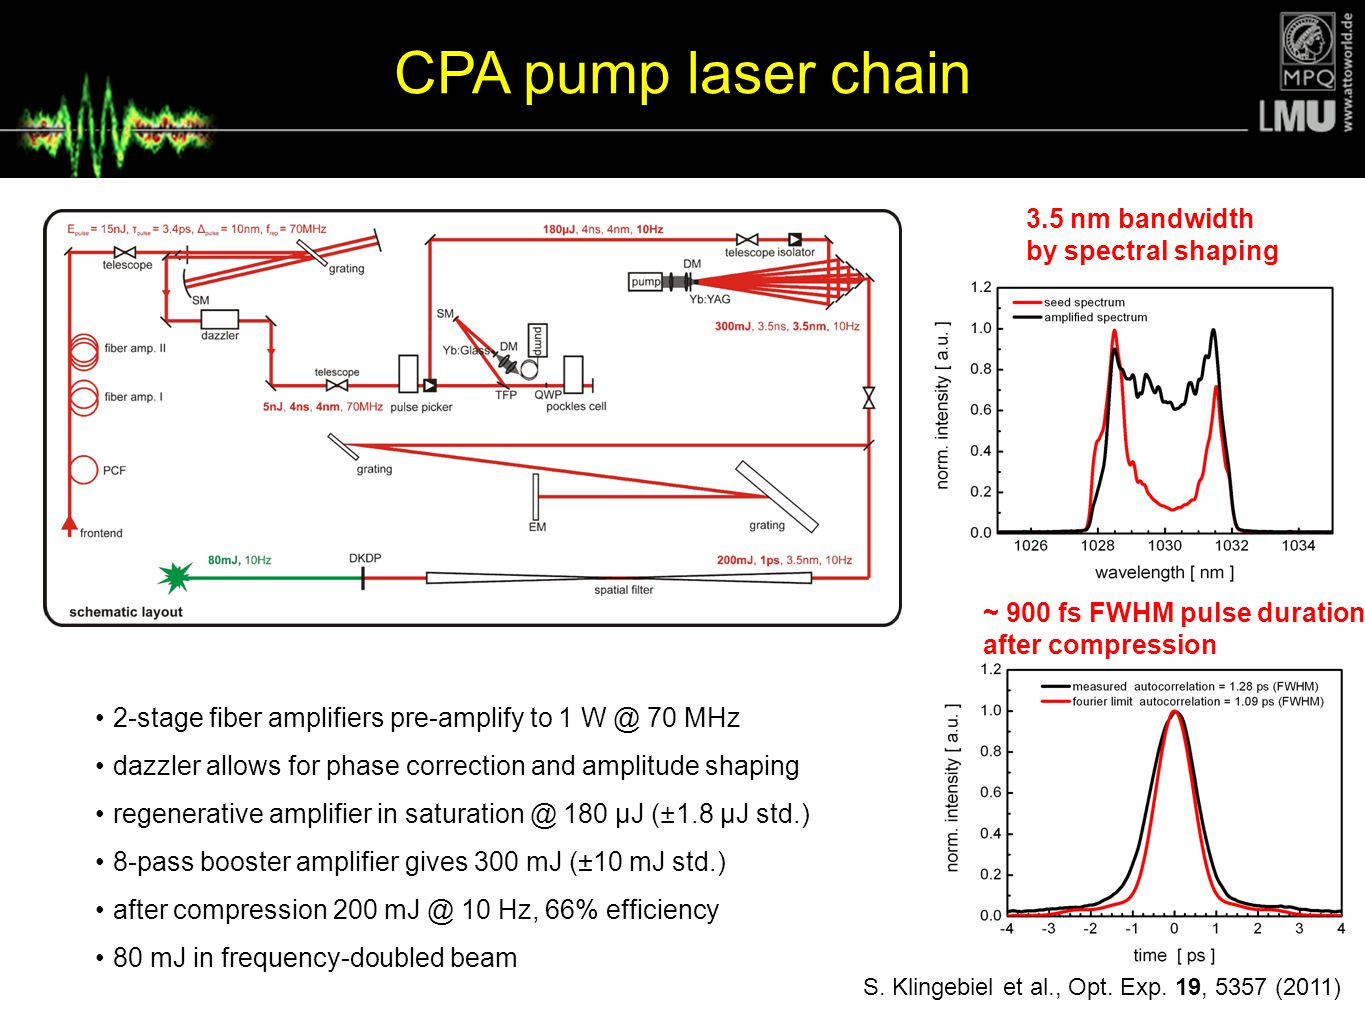 CPA pump laser chain 2-stage fiber amplifiers pre-amplify to 1 W @ 70 MHz dazzler allows for phase correction and amplitude shaping regenerative ampli